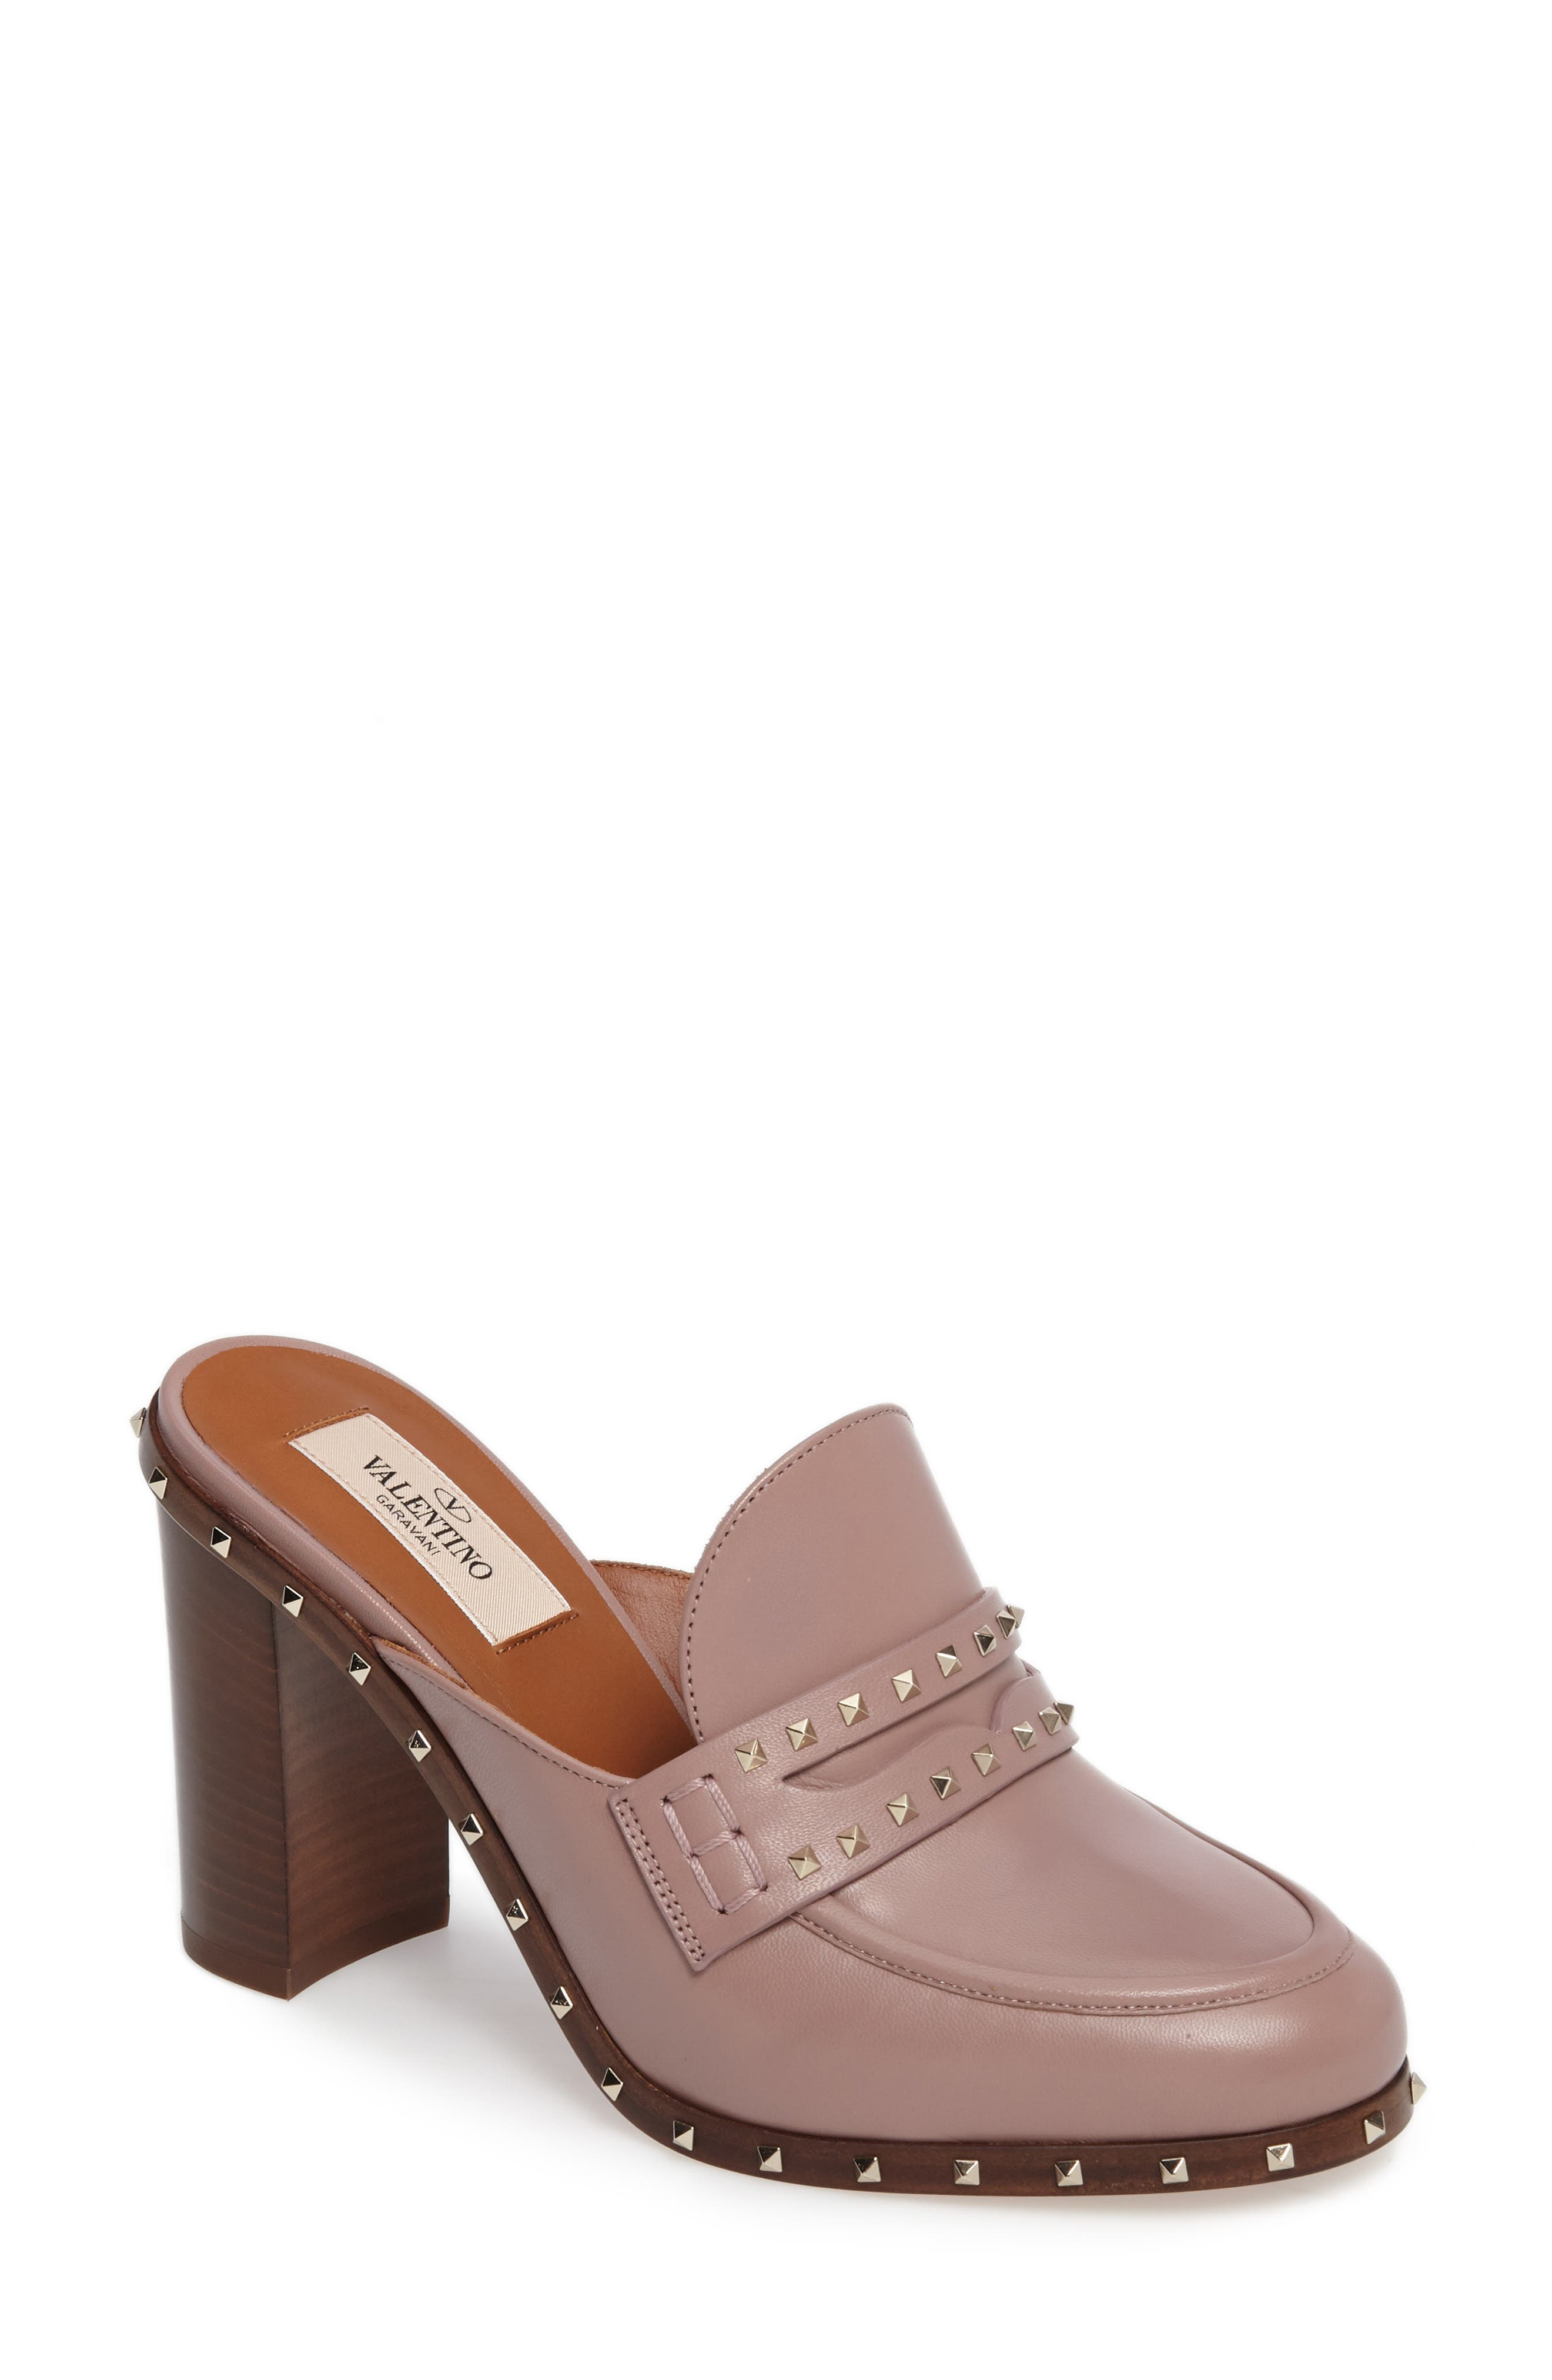 Rockstud Loafer Mule,                             Main thumbnail 1, color,                             Pink Leather